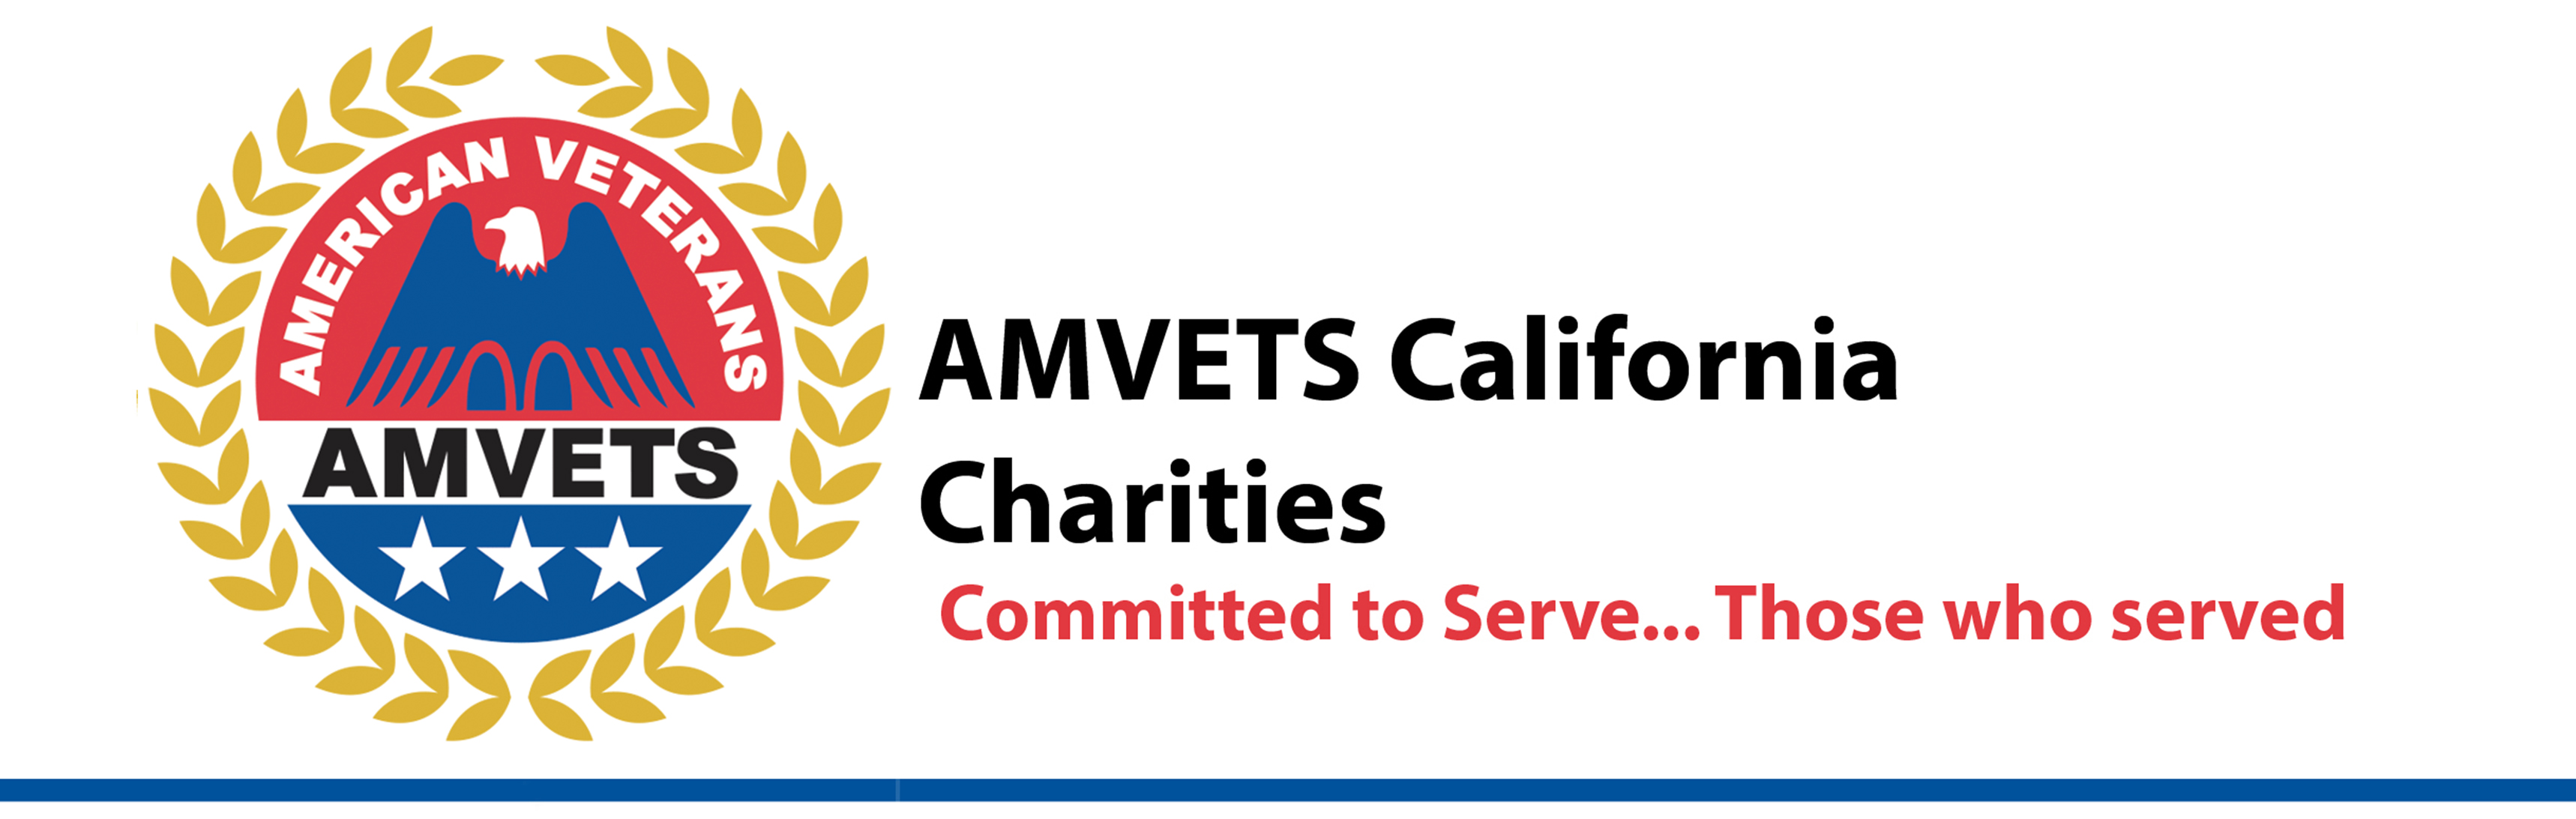 AMVETS California Charities